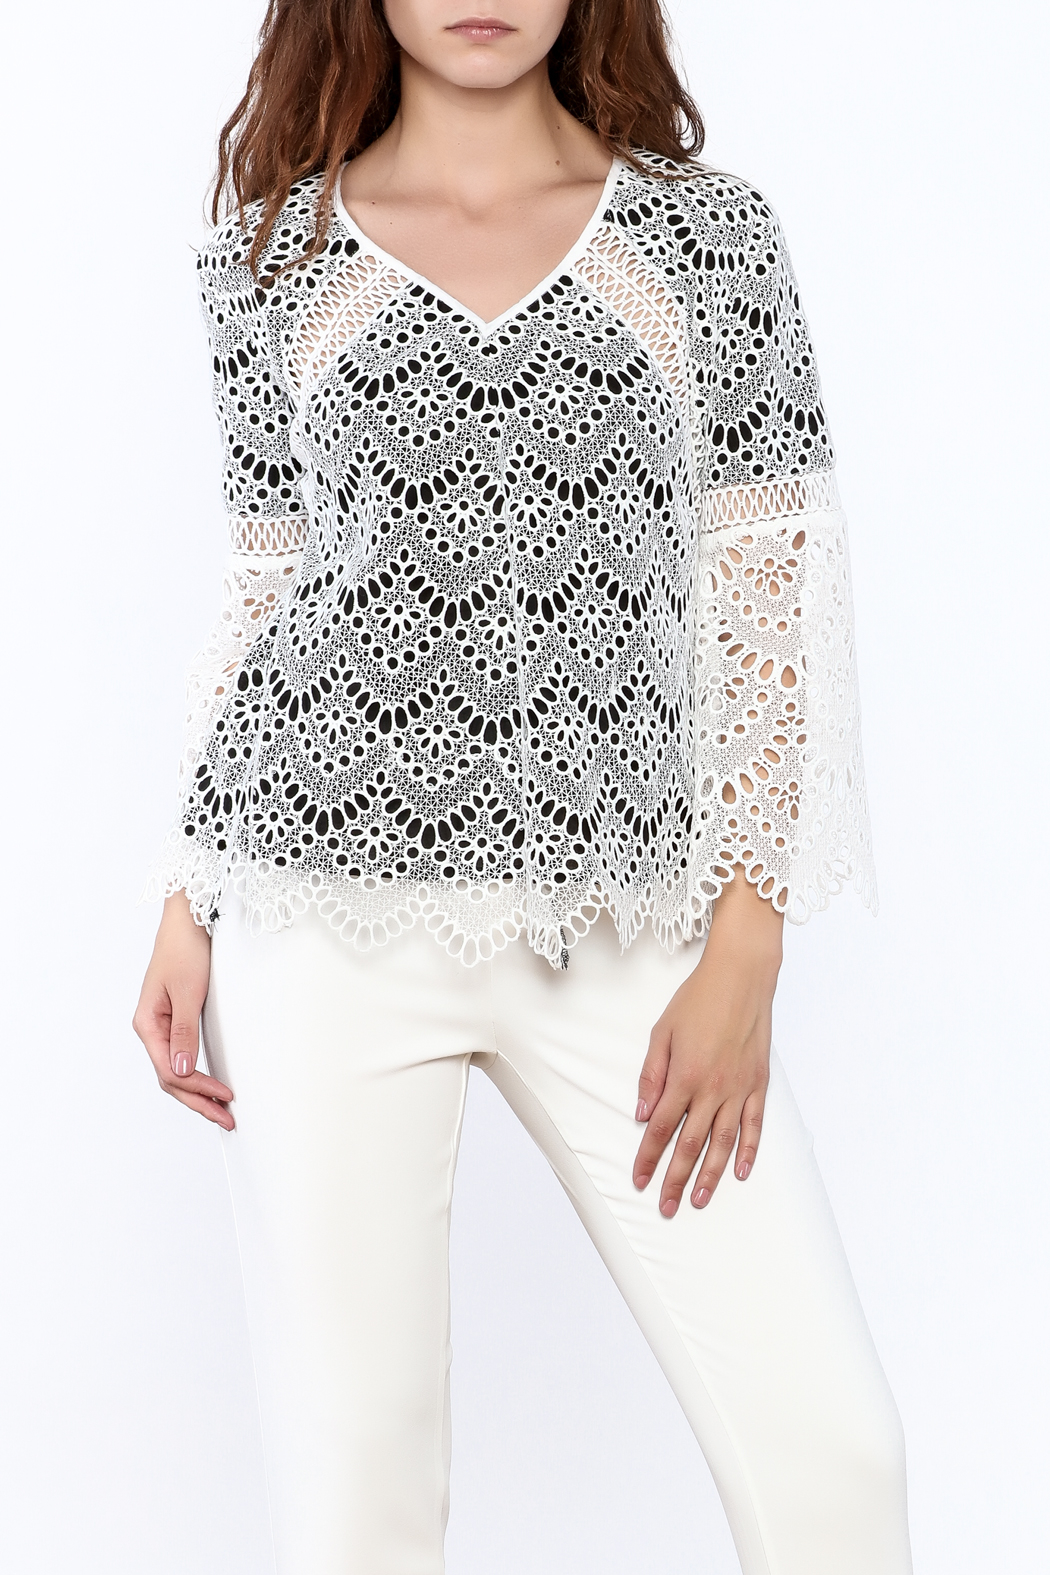 KAS New York Semi Lined Lace Top - Main Image